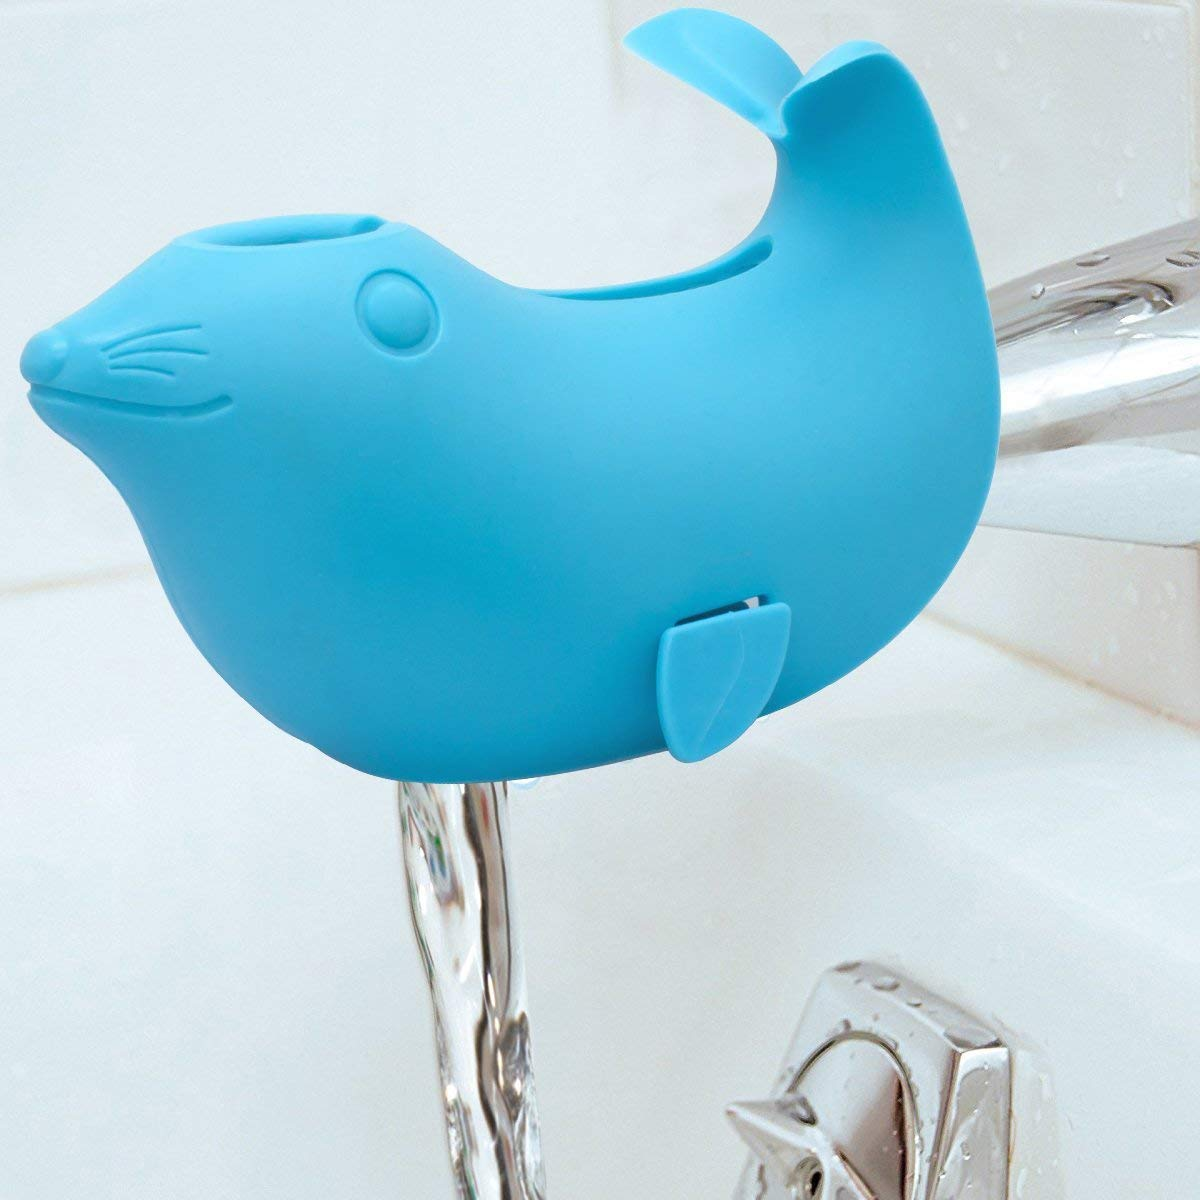 APANDA Baby Protect Bath Spout Cover Universal Fit,Blue Seal